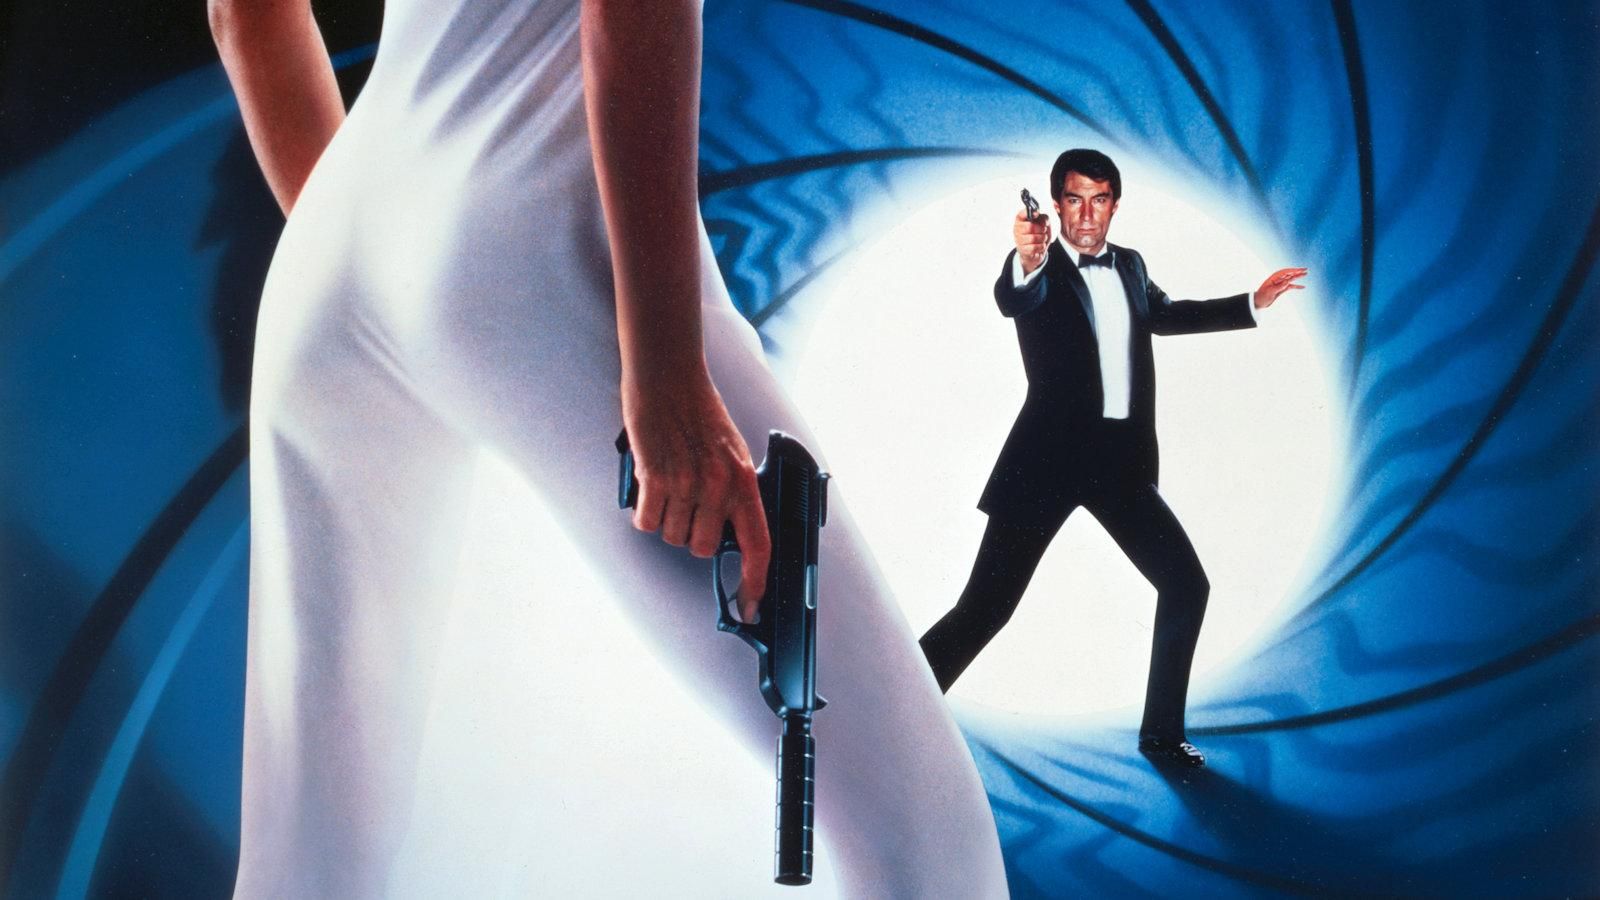 Spy - 1987 - 007 Zona pericolo - The living daylights